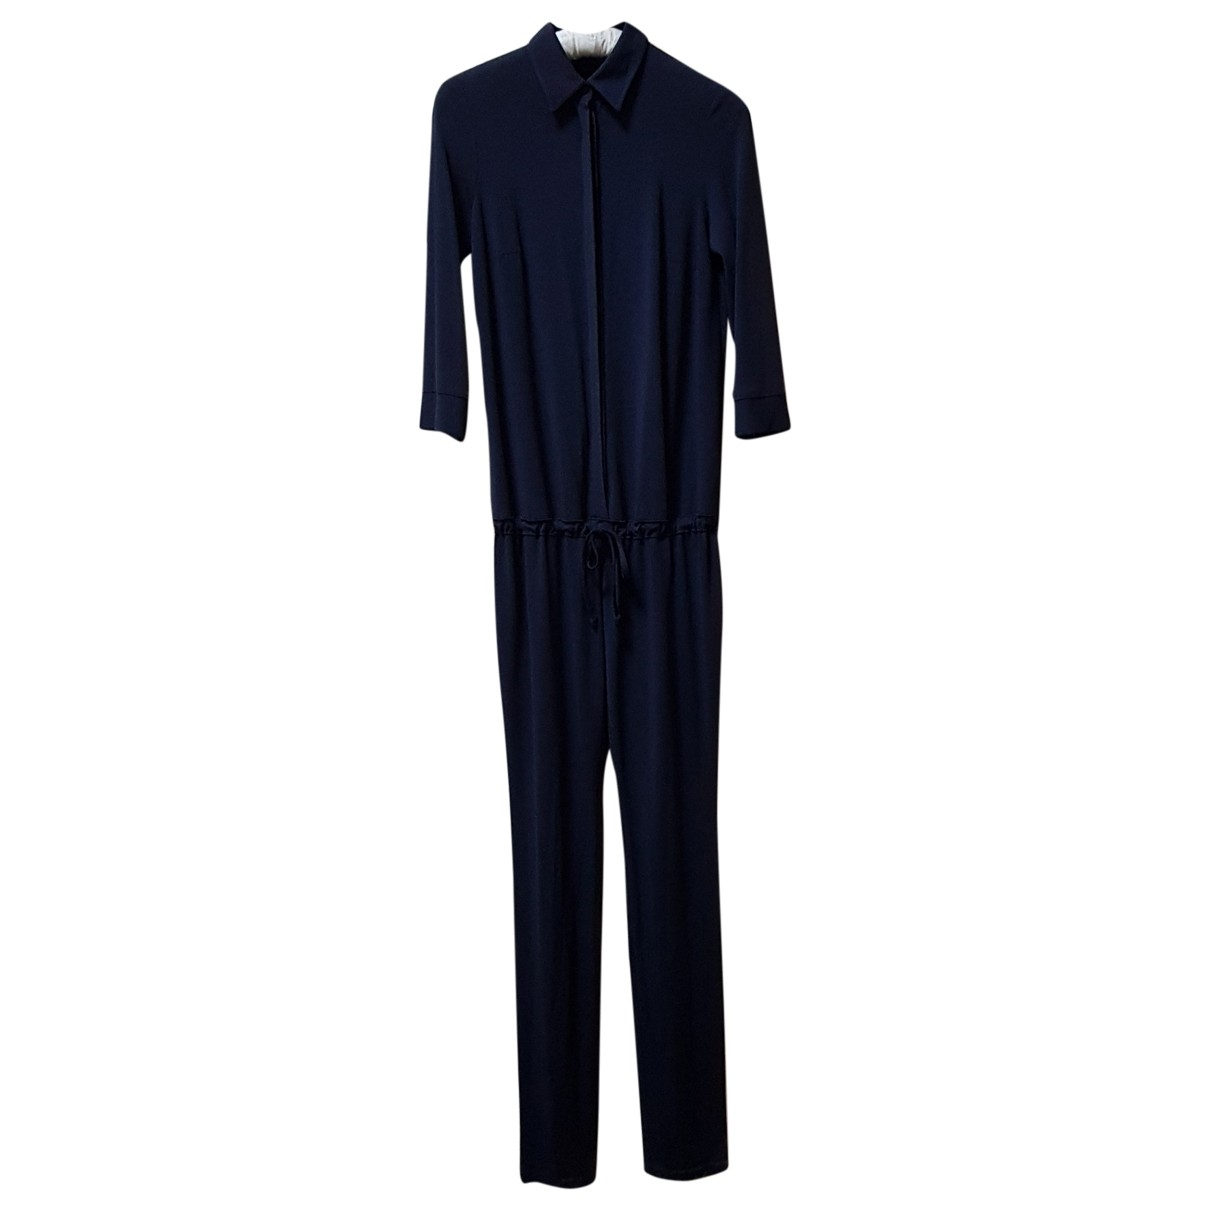 Mila Schön Concept \N Blue jumpsuit for Women 42 IT